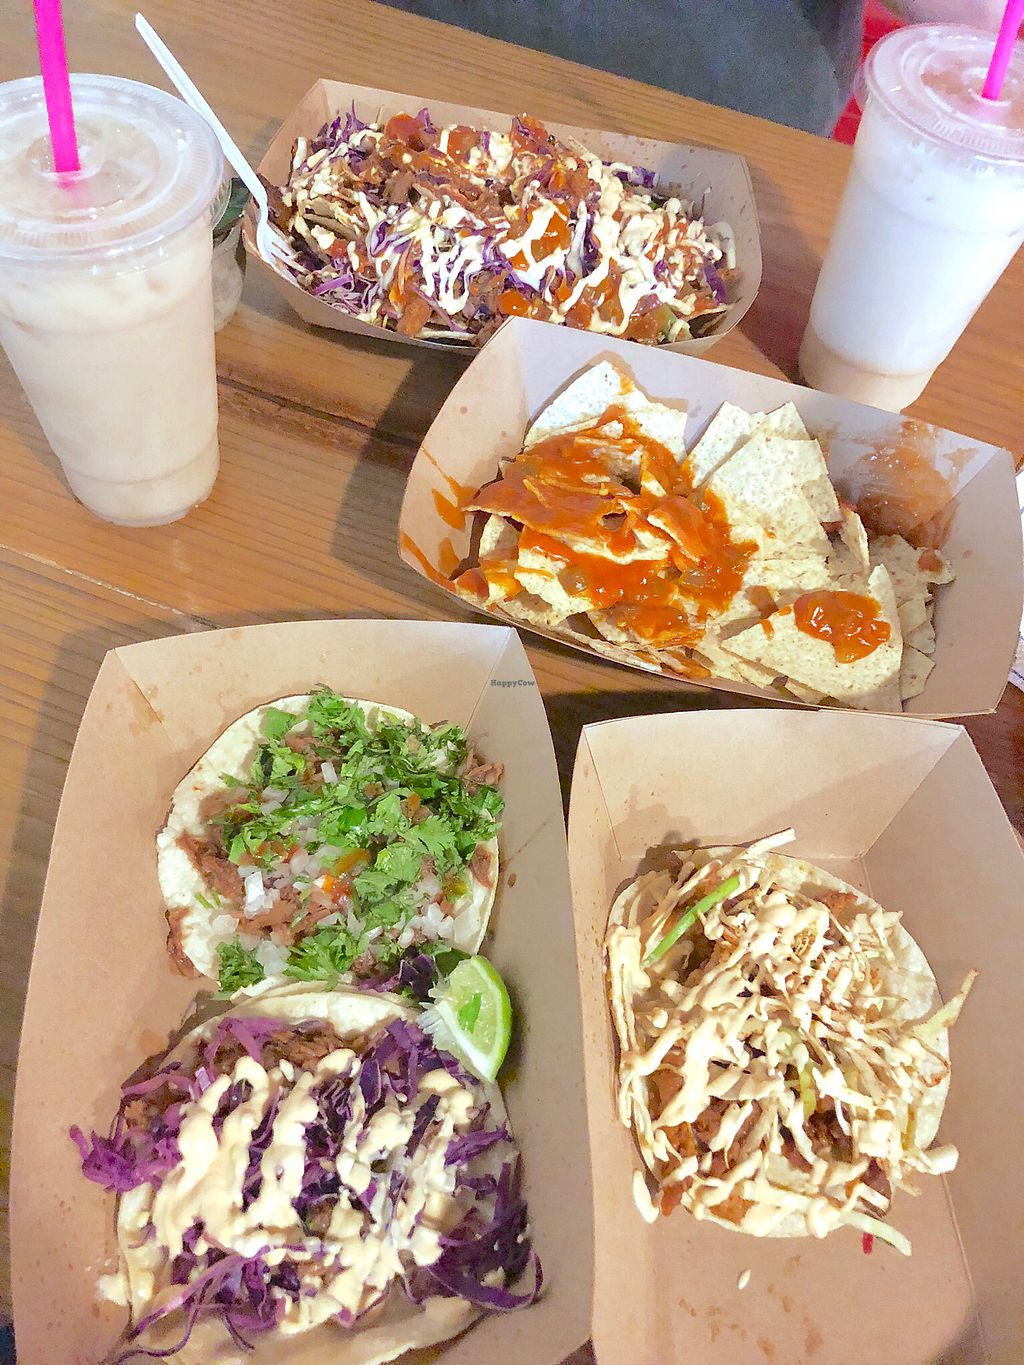 """Photo of Viva Vegan  by <a href=""""/members/profile/heather.m.barrios"""">heather.m.barrios</a> <br/>All the tacos and loaded nachos!! <br/> February 17, 2018  - <a href='/contact/abuse/image/101850/360213'>Report</a>"""